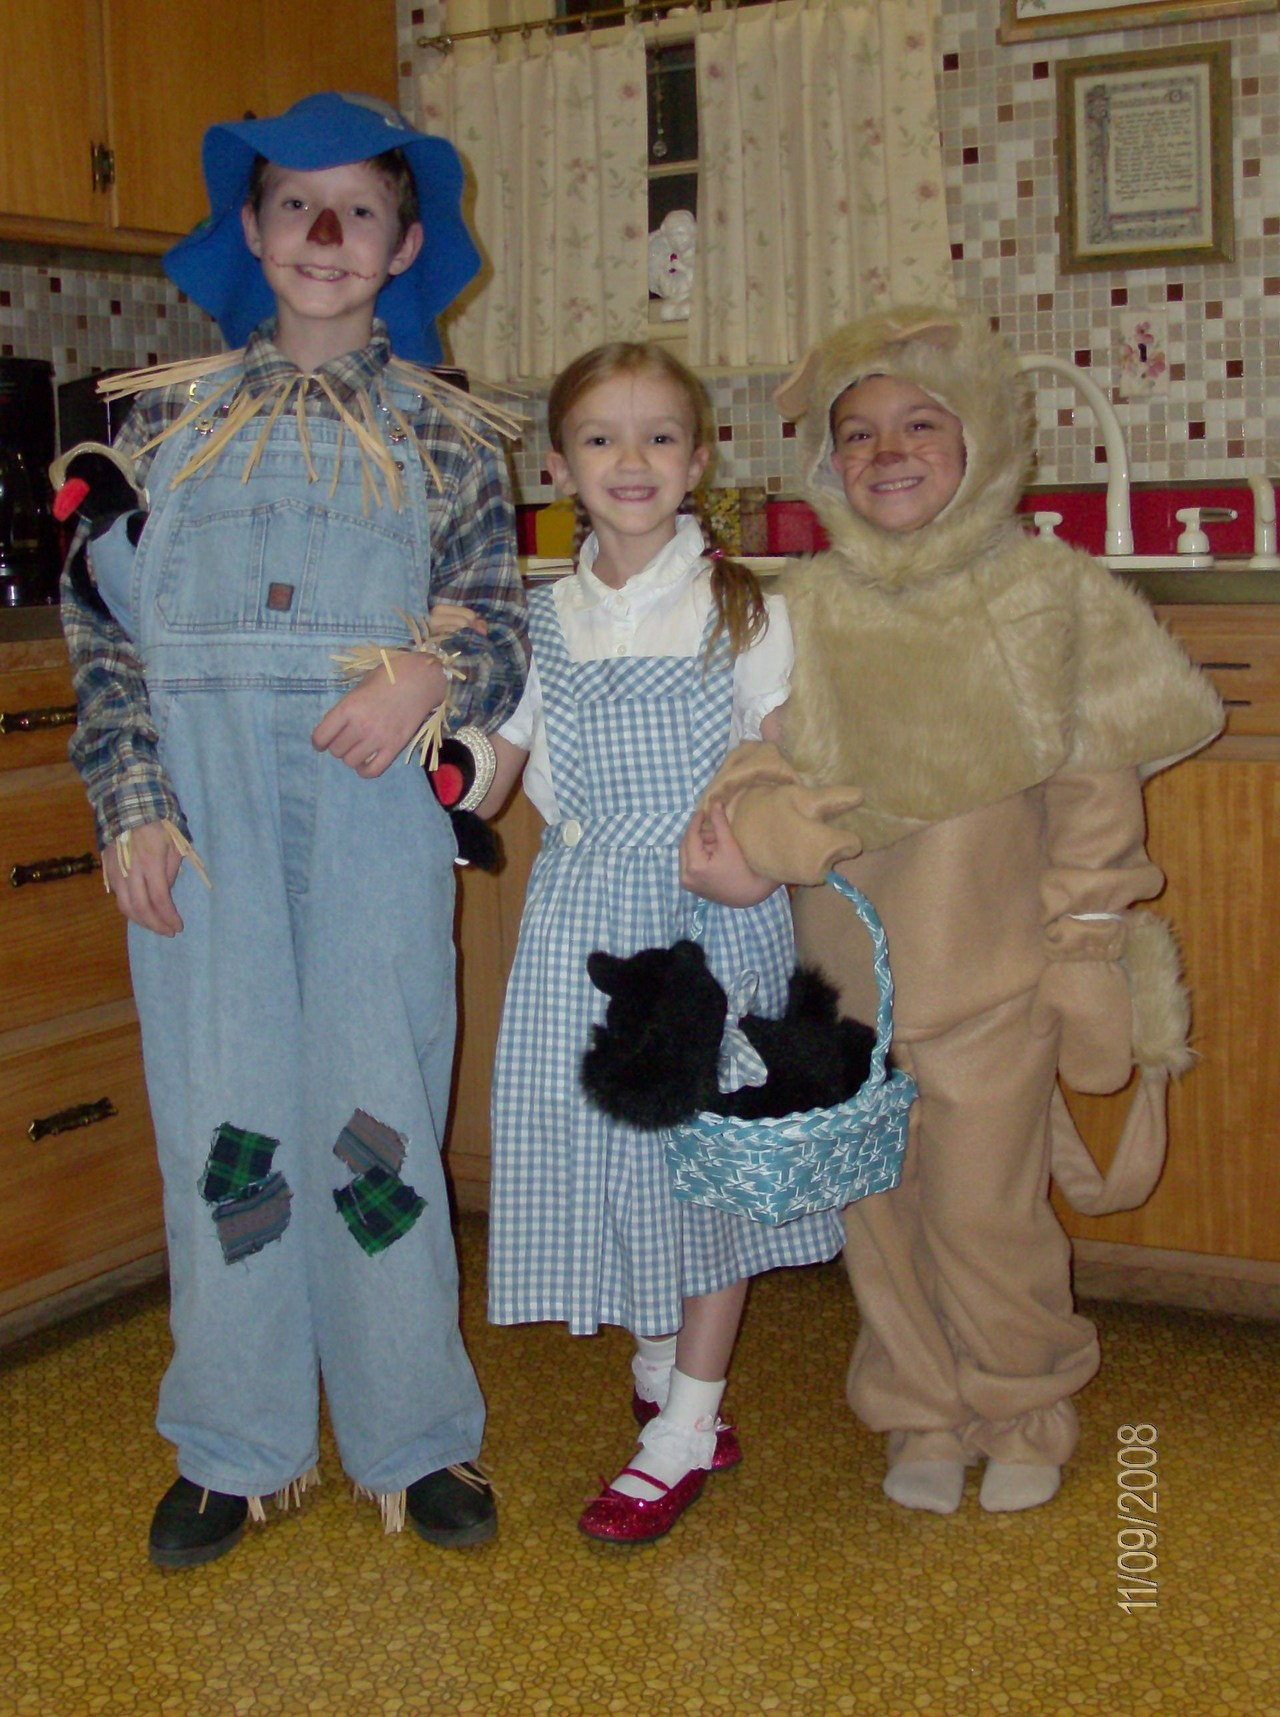 """2008: Mom made the Dorothy costume about 10 years earlier for older sister and made the Lion costume this year; Dad assembled the Scarecrow costume."" -- submitted by David W."